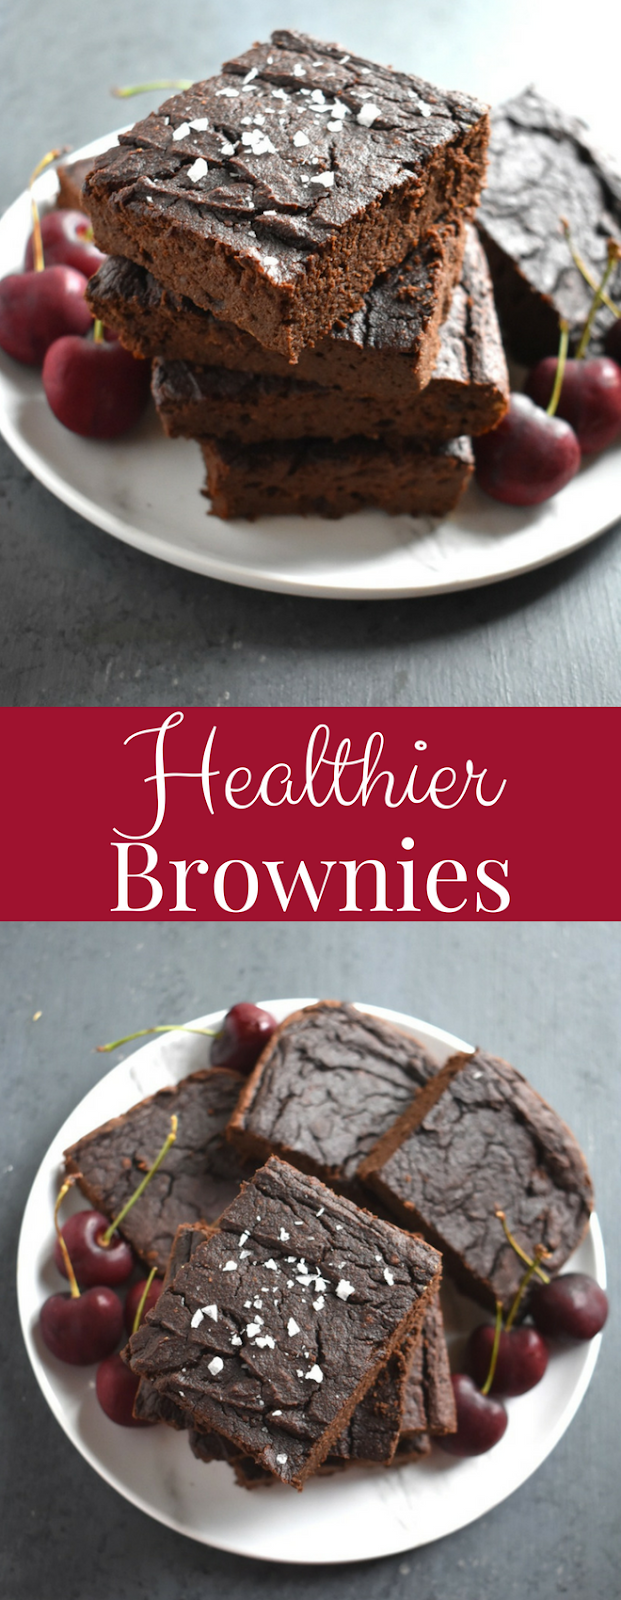 Healthier Fudgy Brownies are dense and rich, naturally gluten-free, grain-free and are made with pumpkin for a comforting and delicious treat! www.nutritionistreviews.com